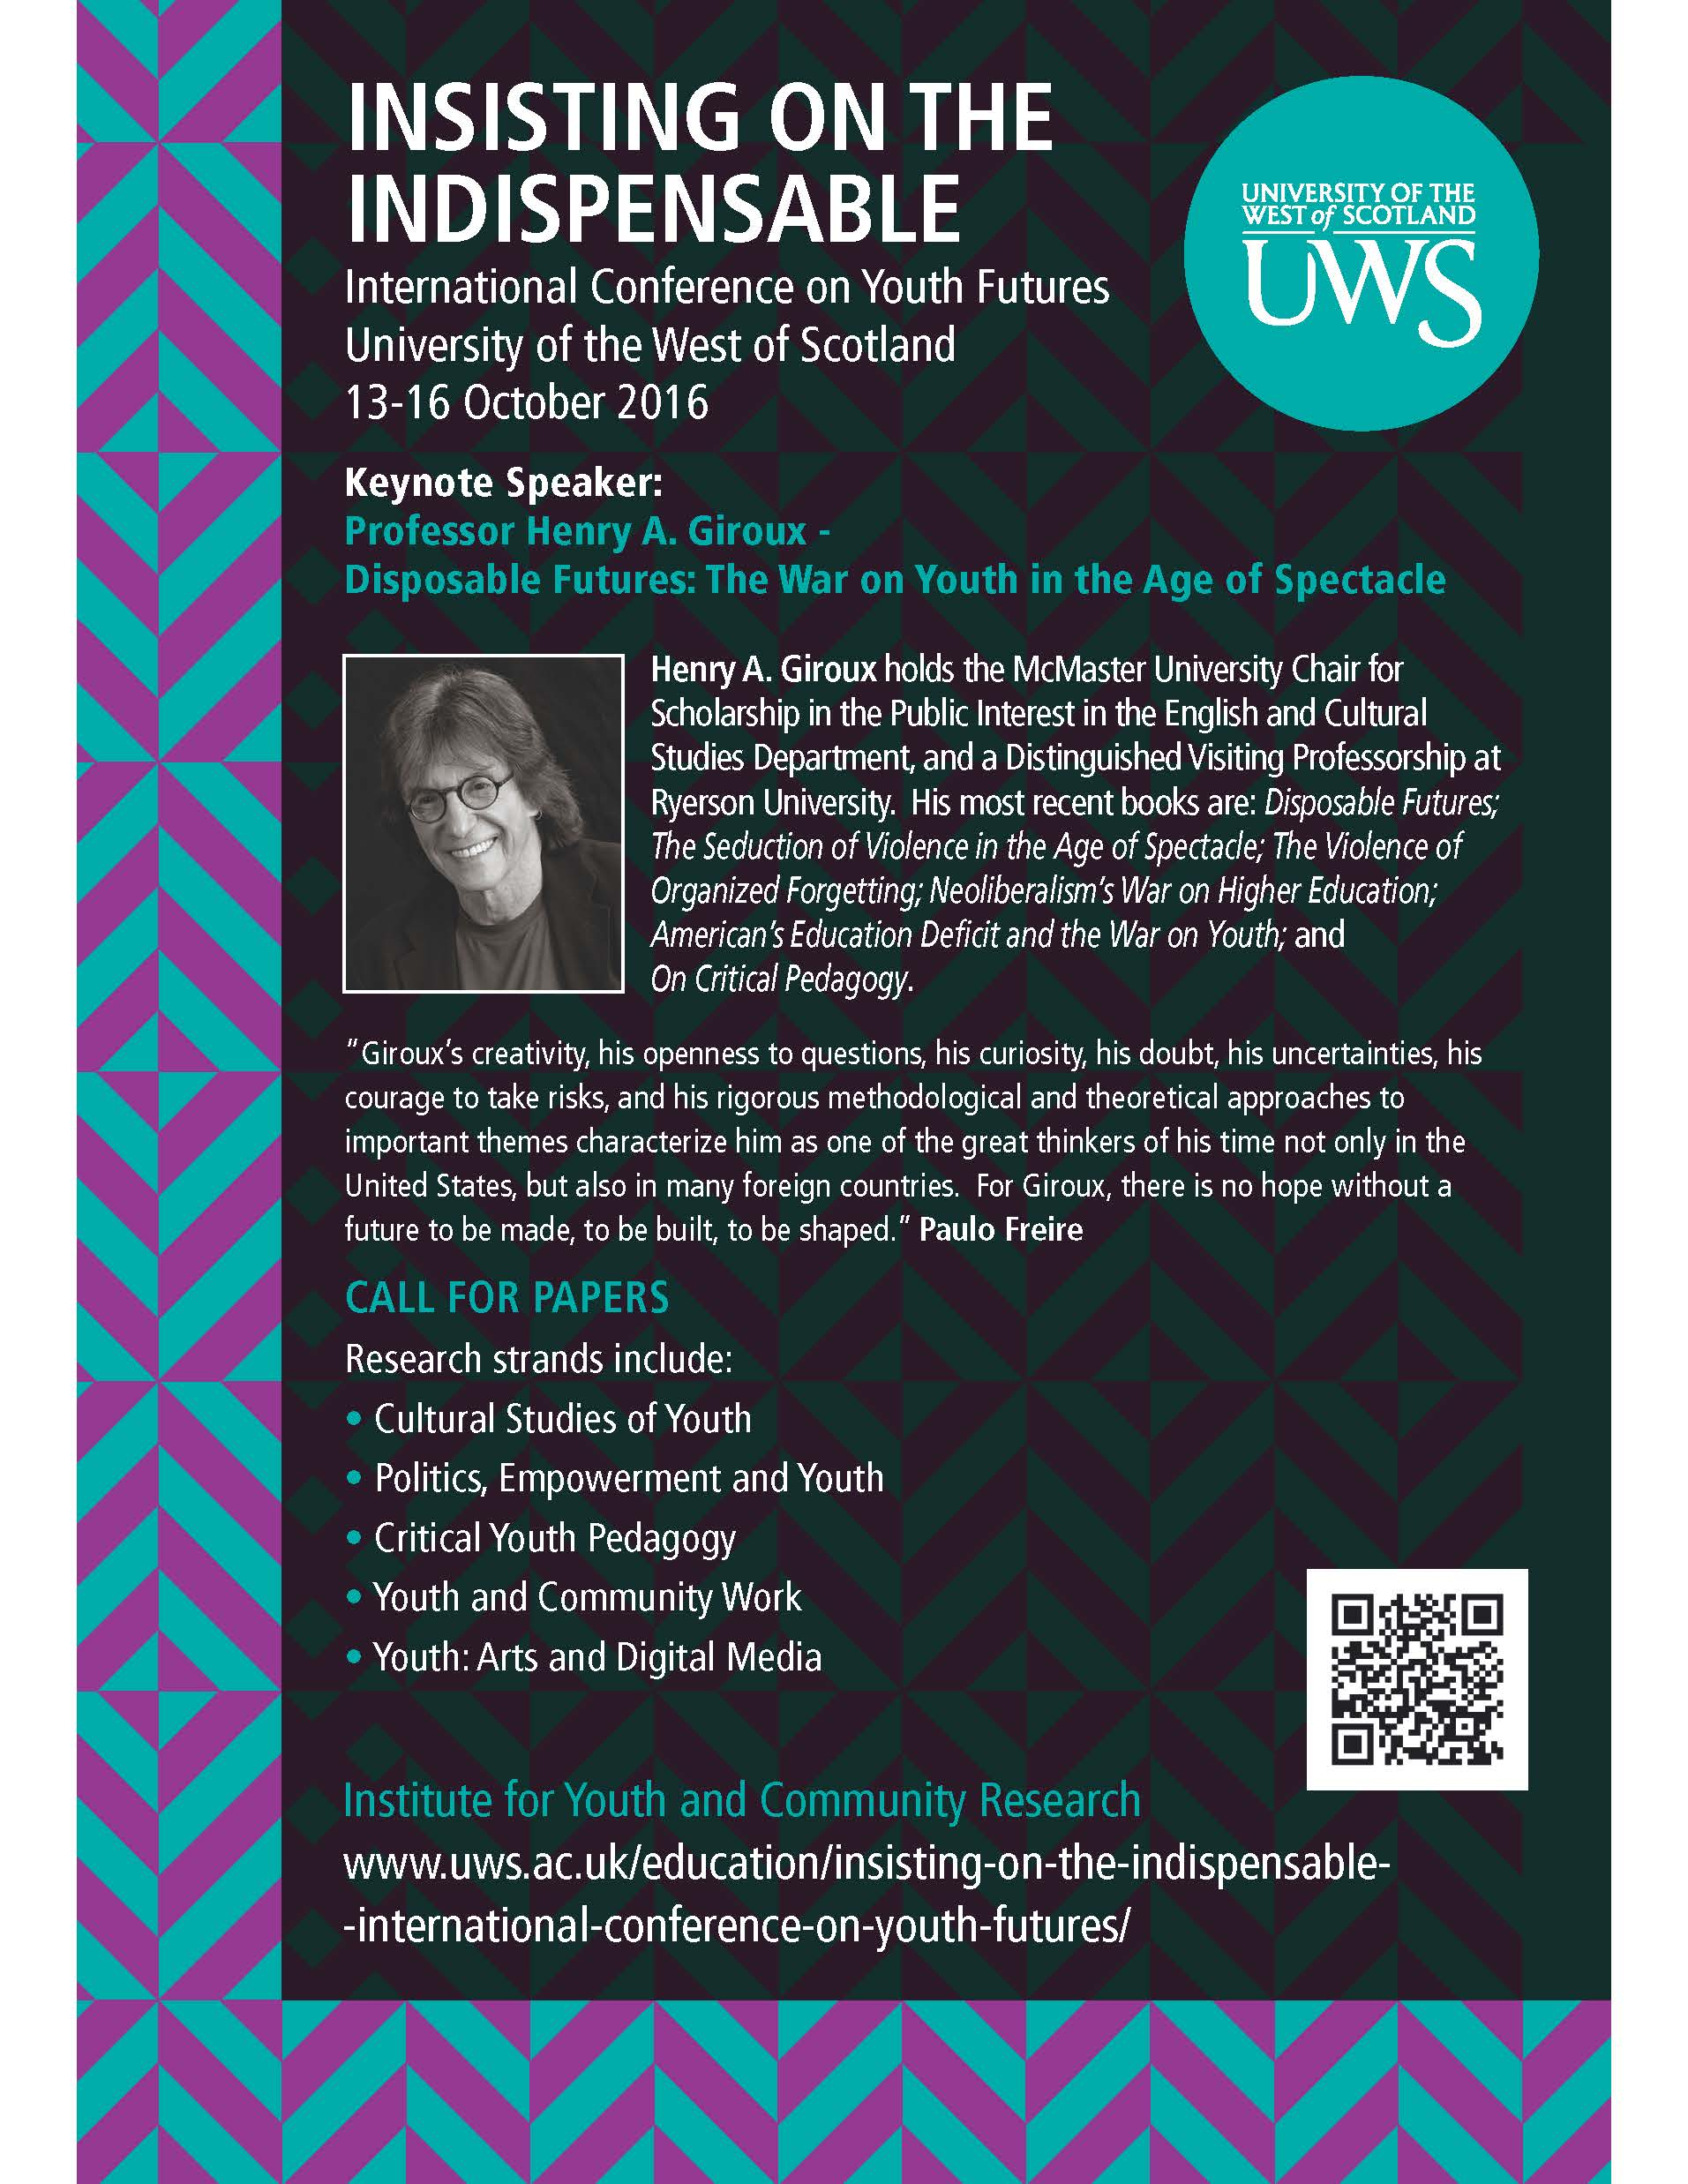 International Conference on Youth Futures - University of the West of Scotland [13-16 Oct 2016]